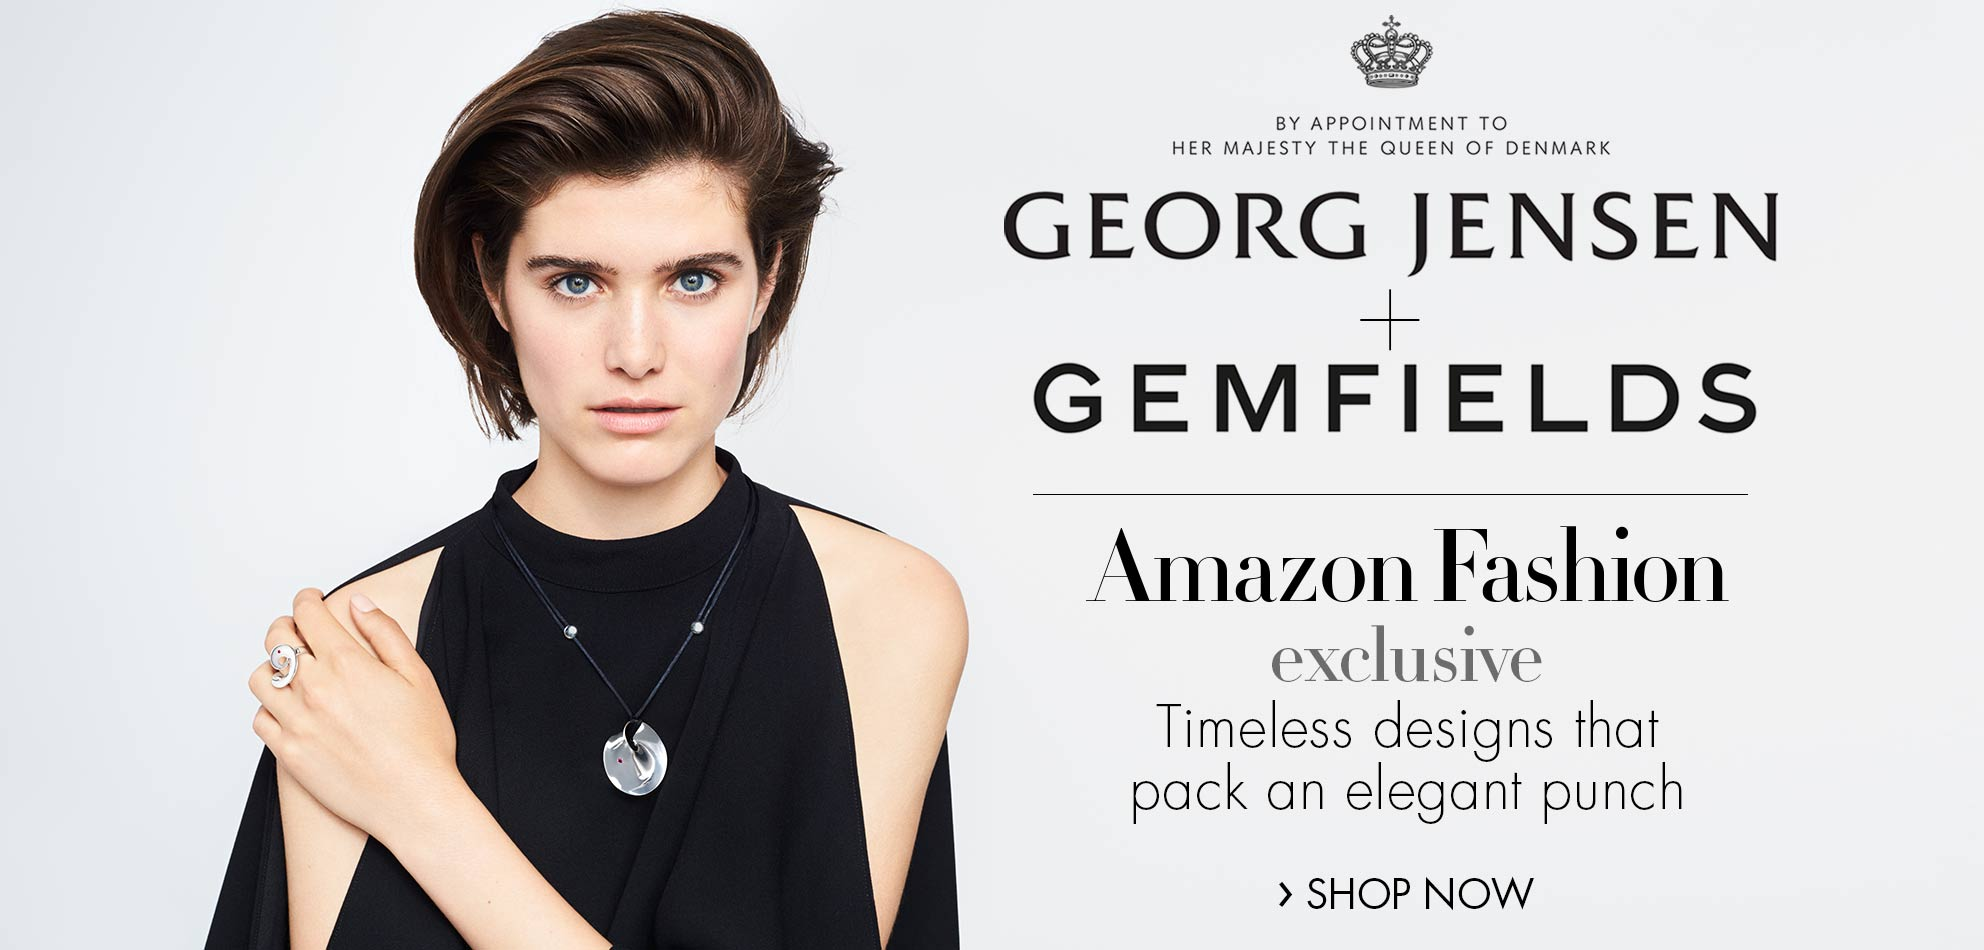 Georg Jensen + Gemfields Collaboration